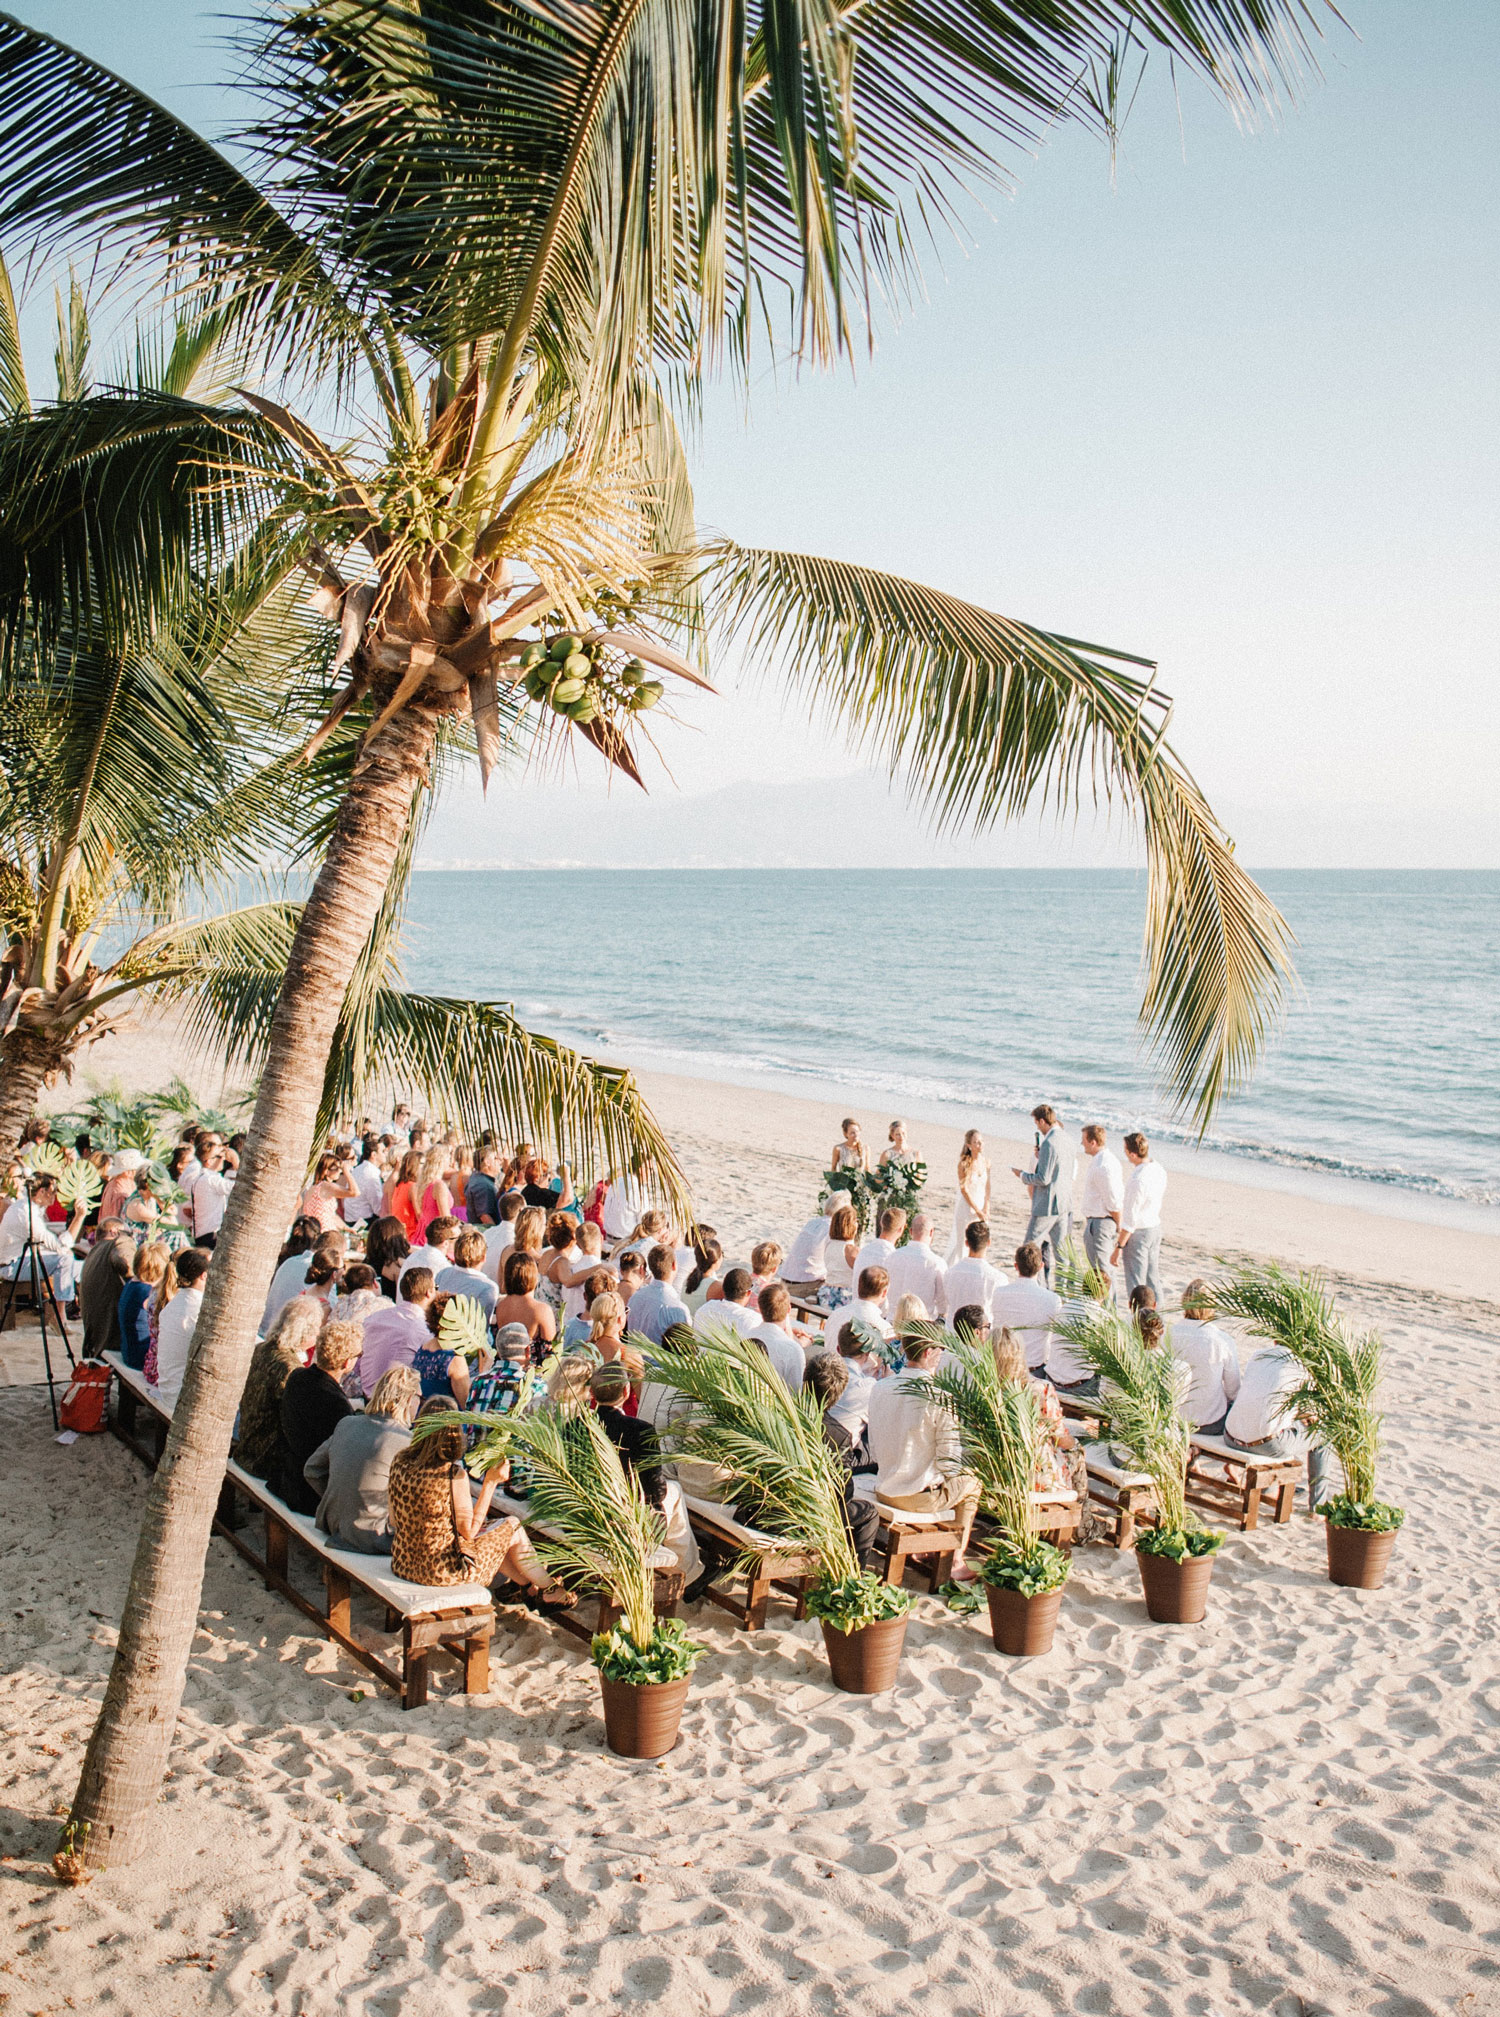 Destination wedding ceremony on beach sand in Mexico with ocean view